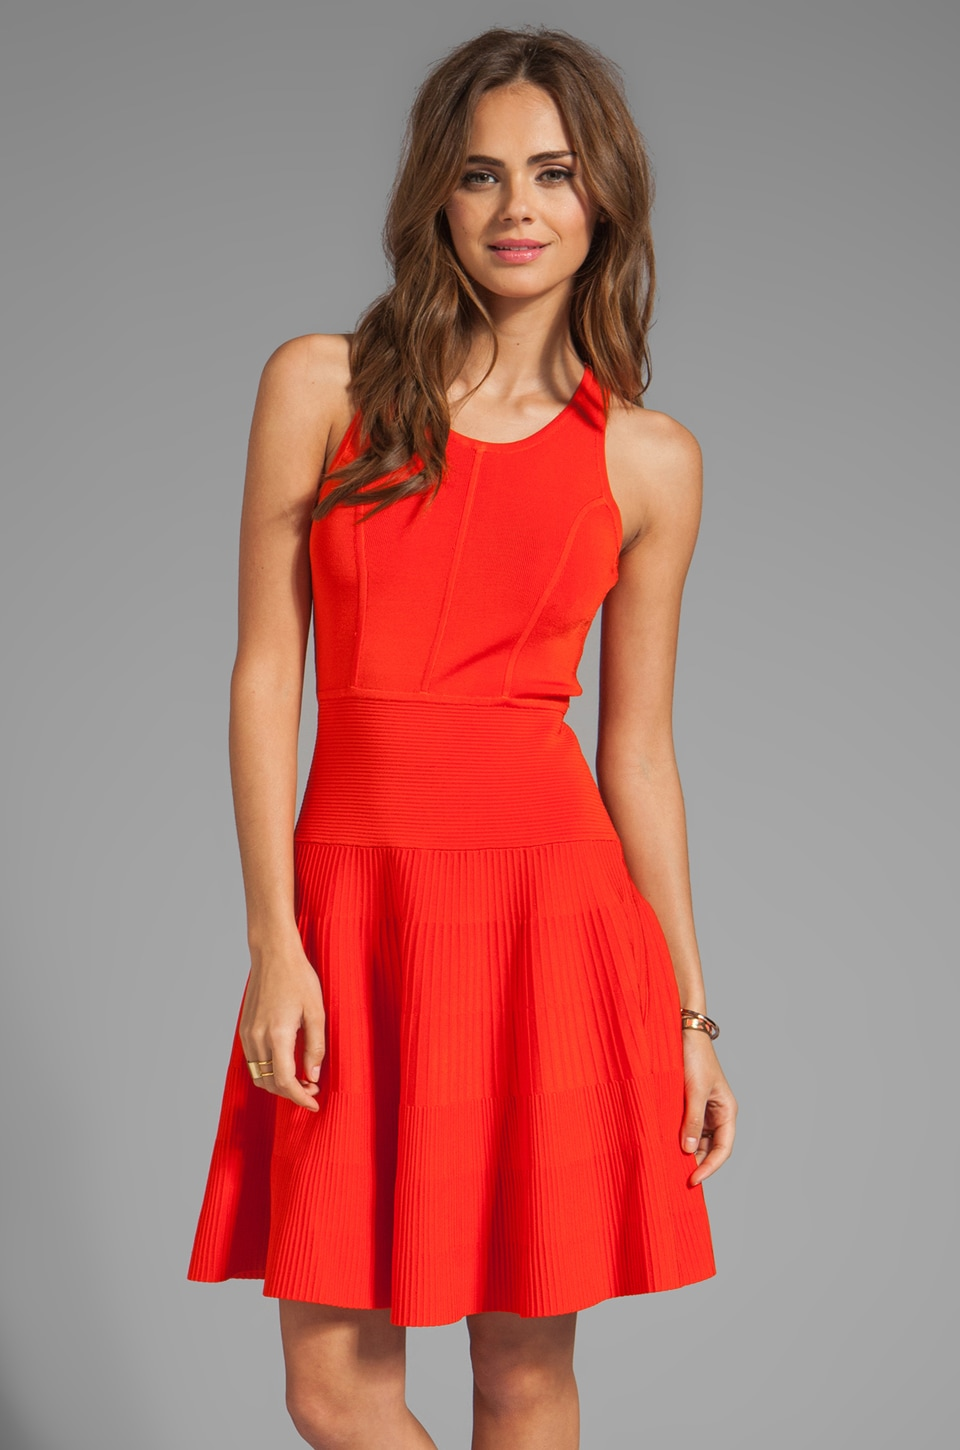 MILLY May Knits Delilah Closed Back Flare Dress in Kumquat